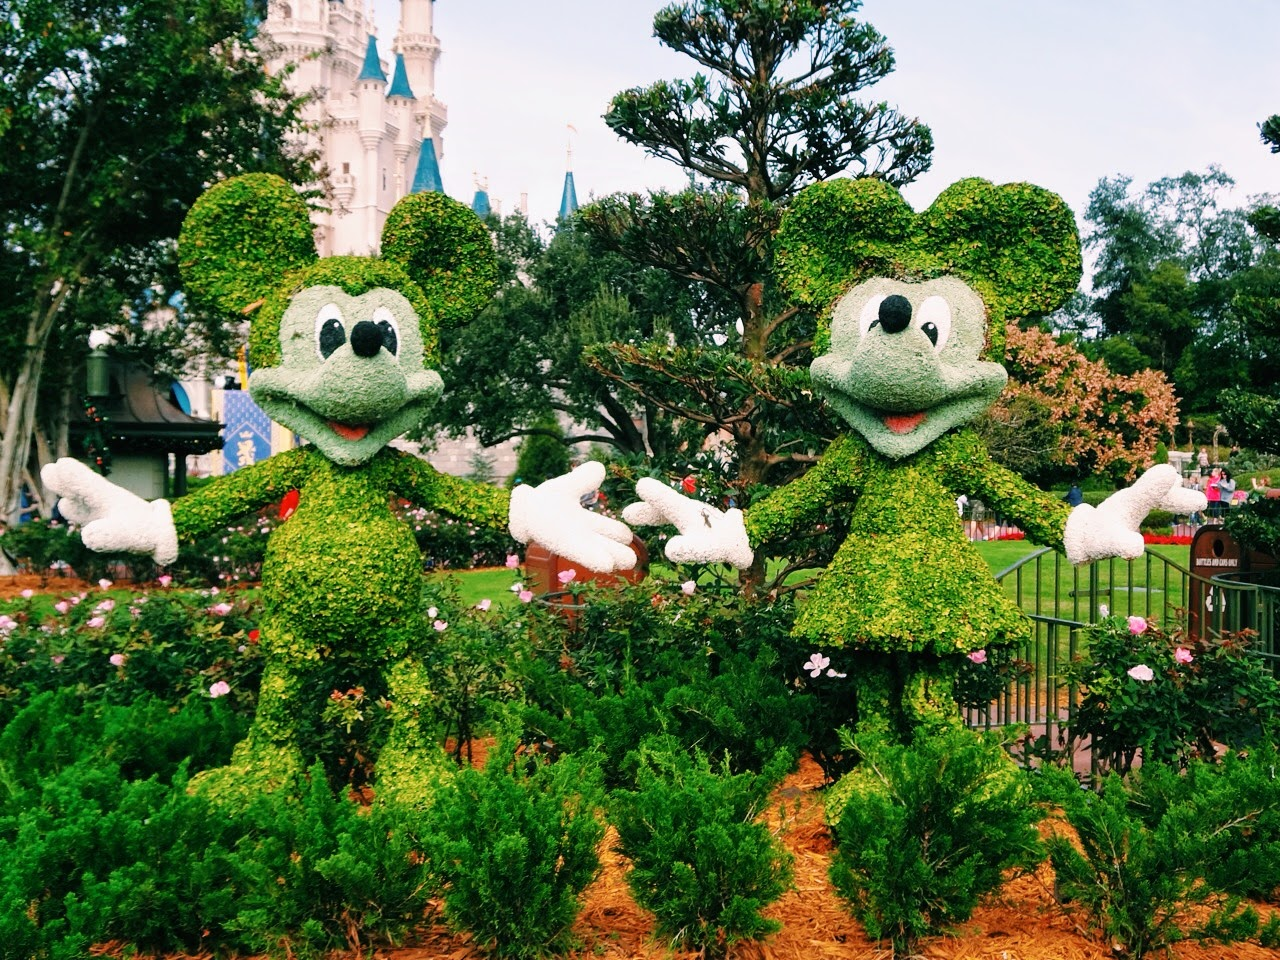 101 Walt Disney World Tips For Adults